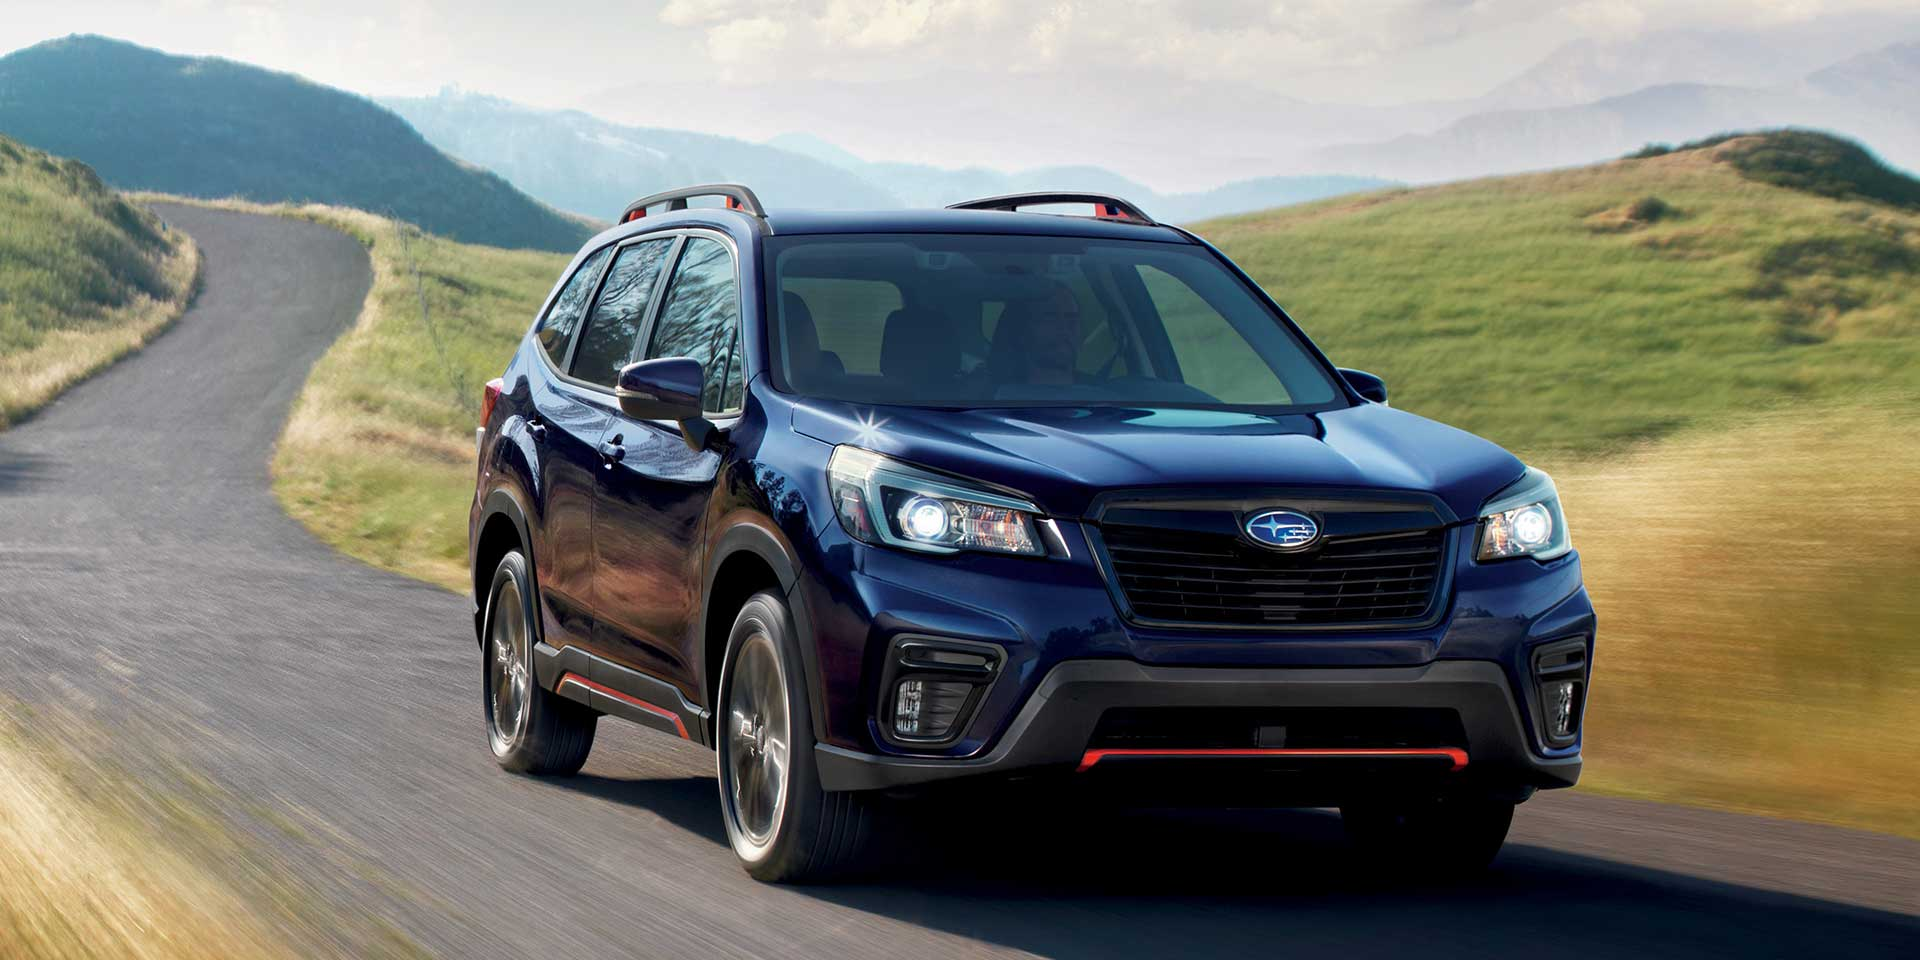 2019 - Subaru - Forester - Vehicles on Display | Chicago ...